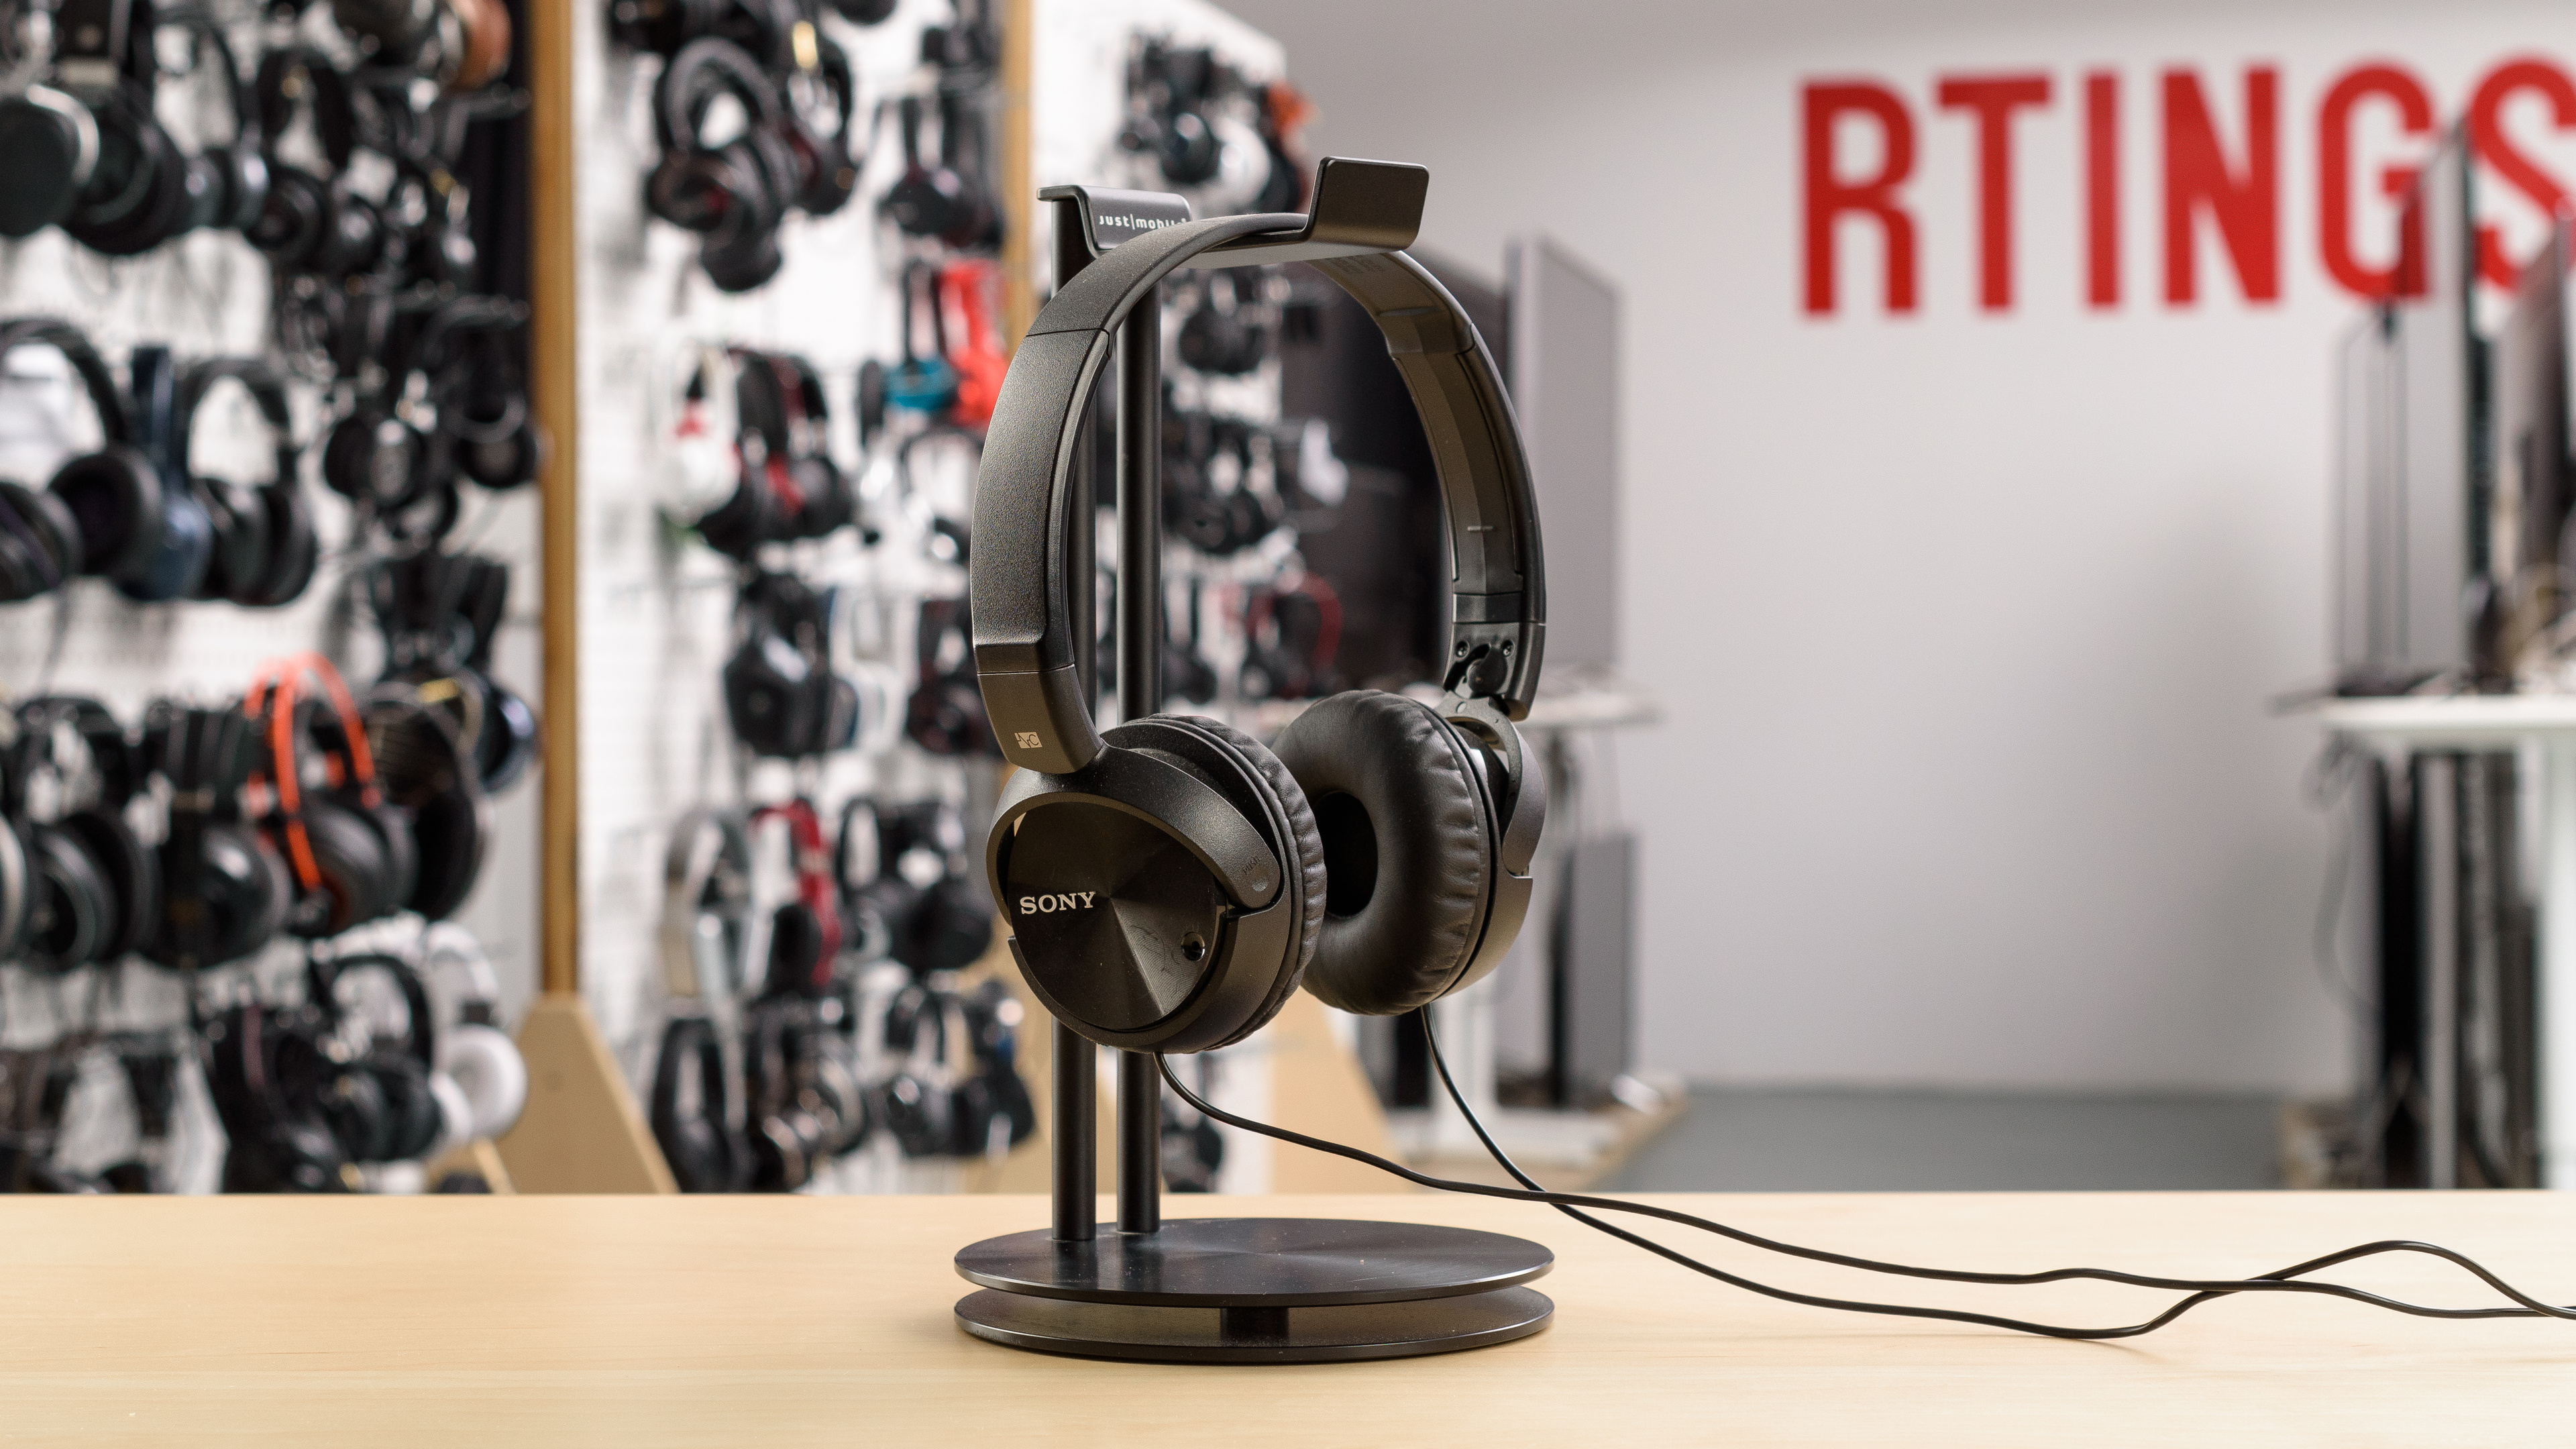 Sony Mdr Zx110nc Review Rtingscom